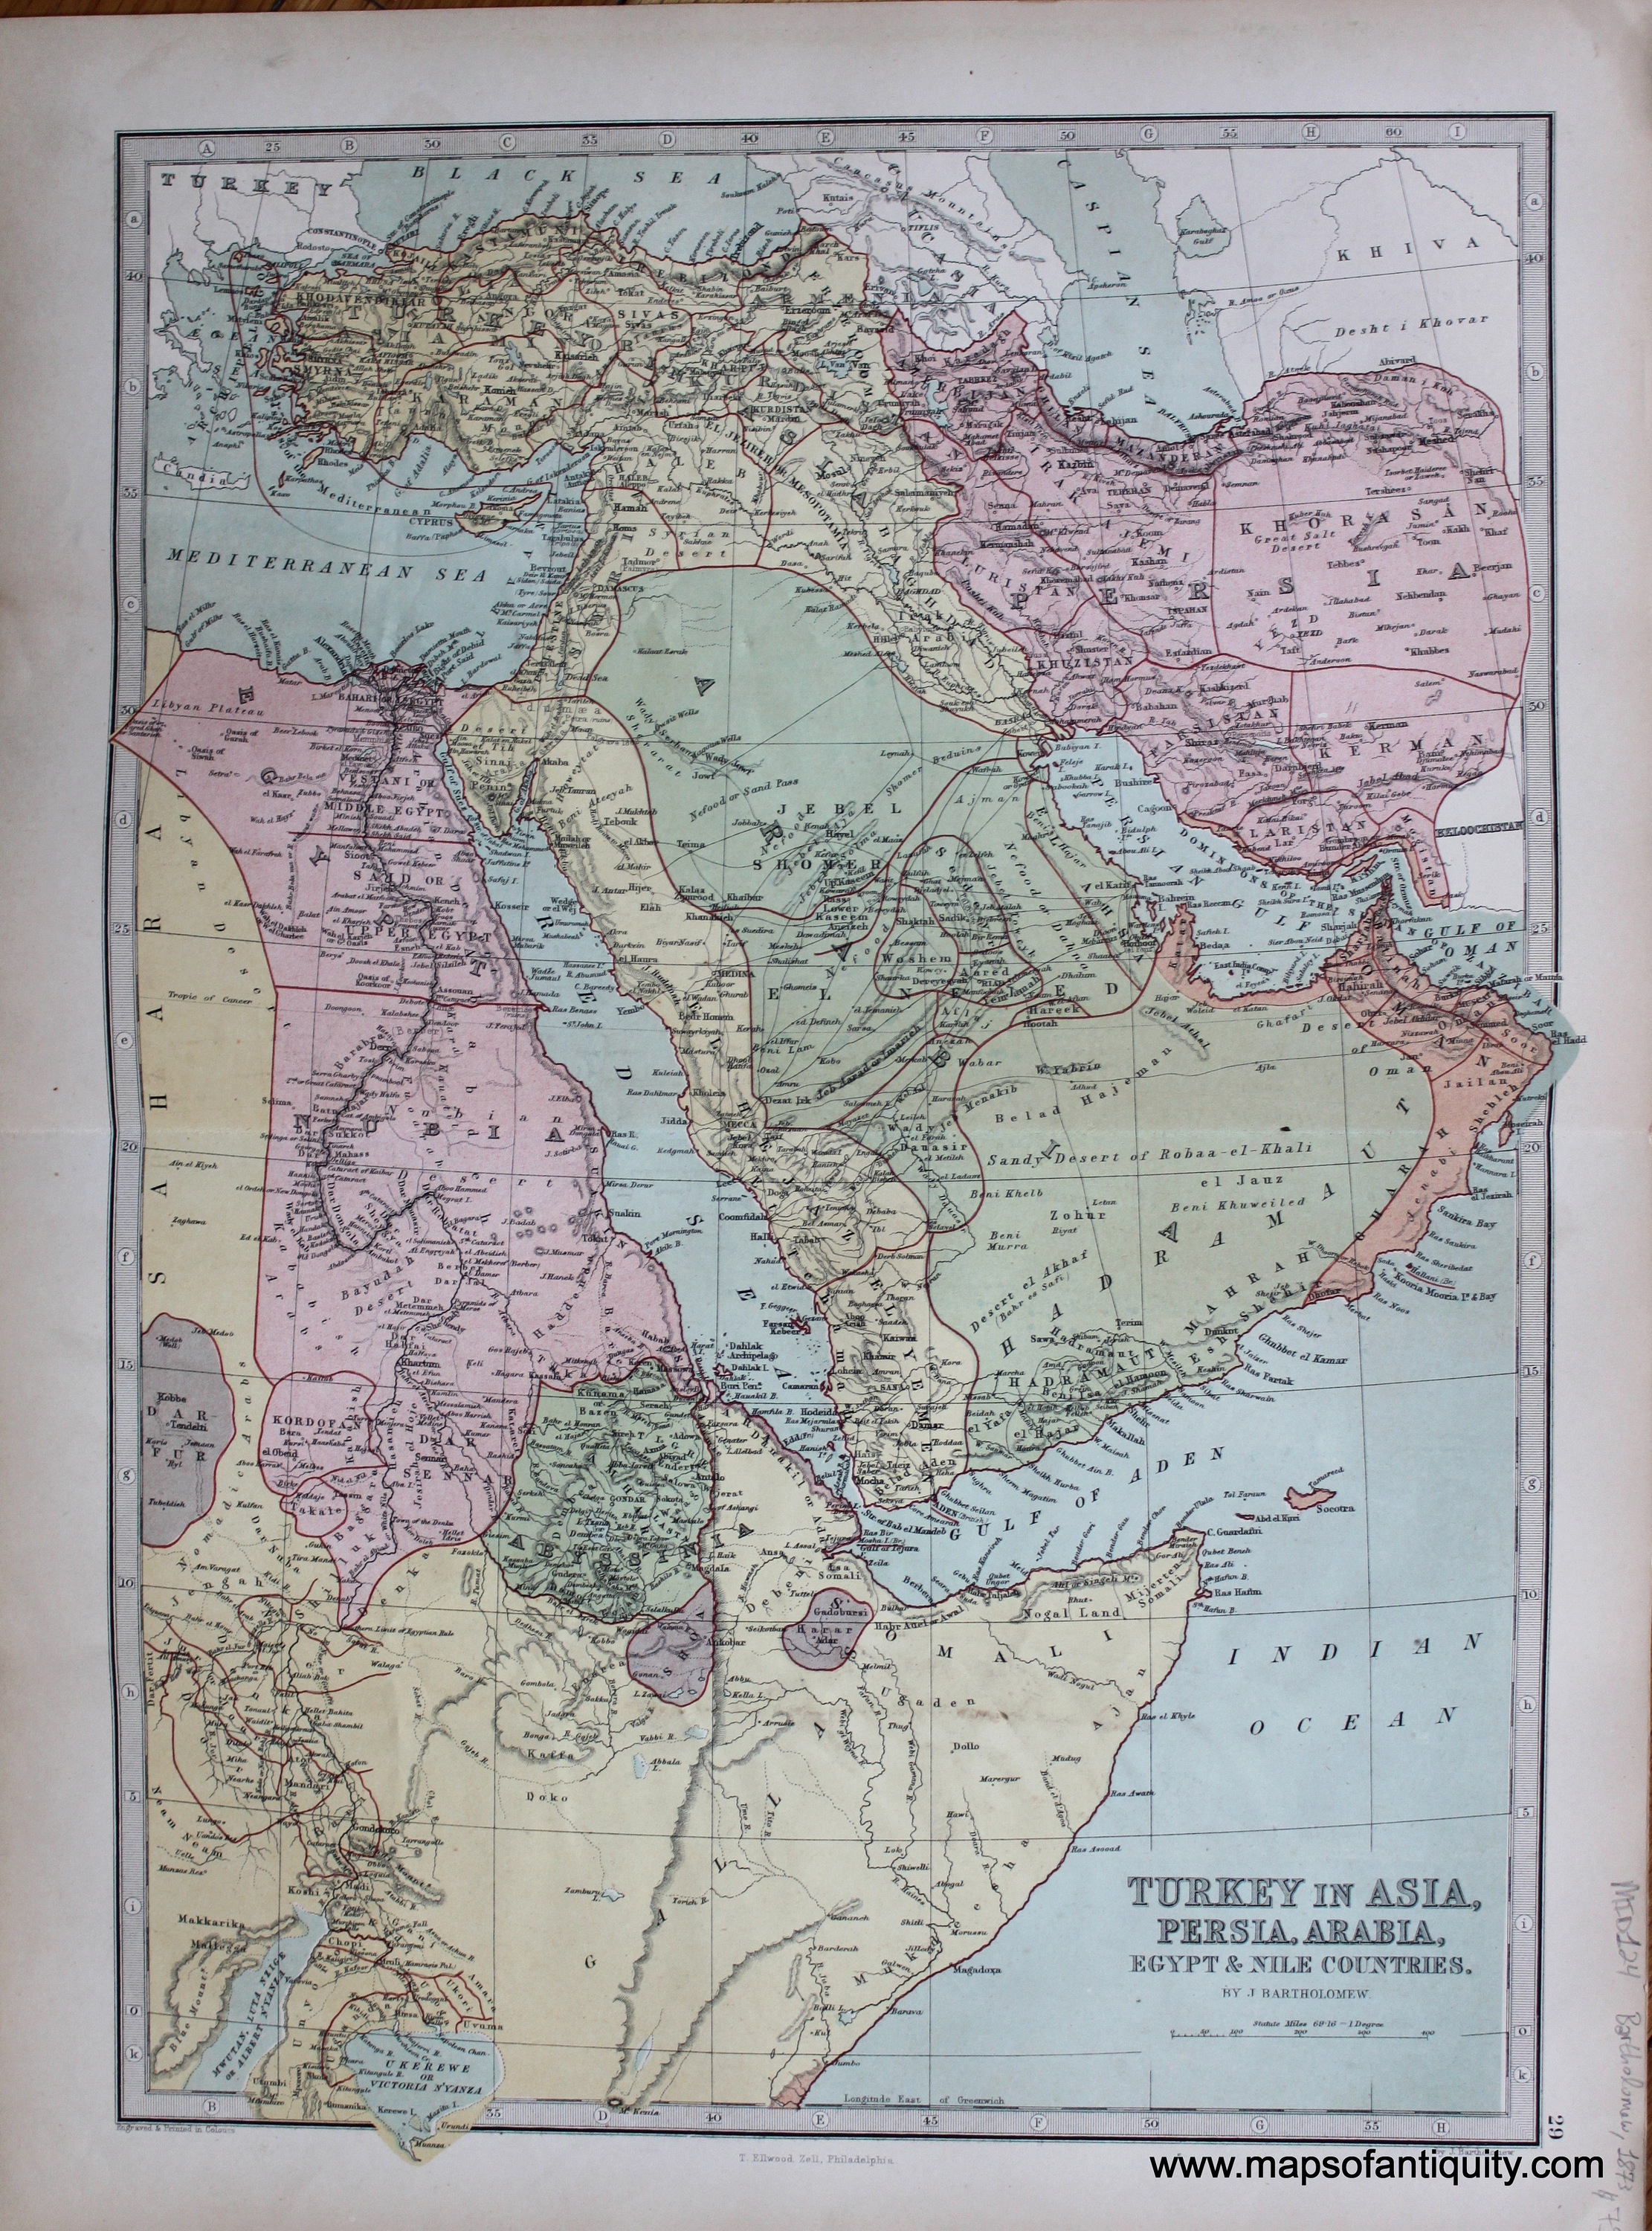 Fileturkey in asia persia arabia egypt and nile countries 1873 fileturkey in asia persia arabia egypt and nile countries 1873 atlas gumiabroncs Choice Image